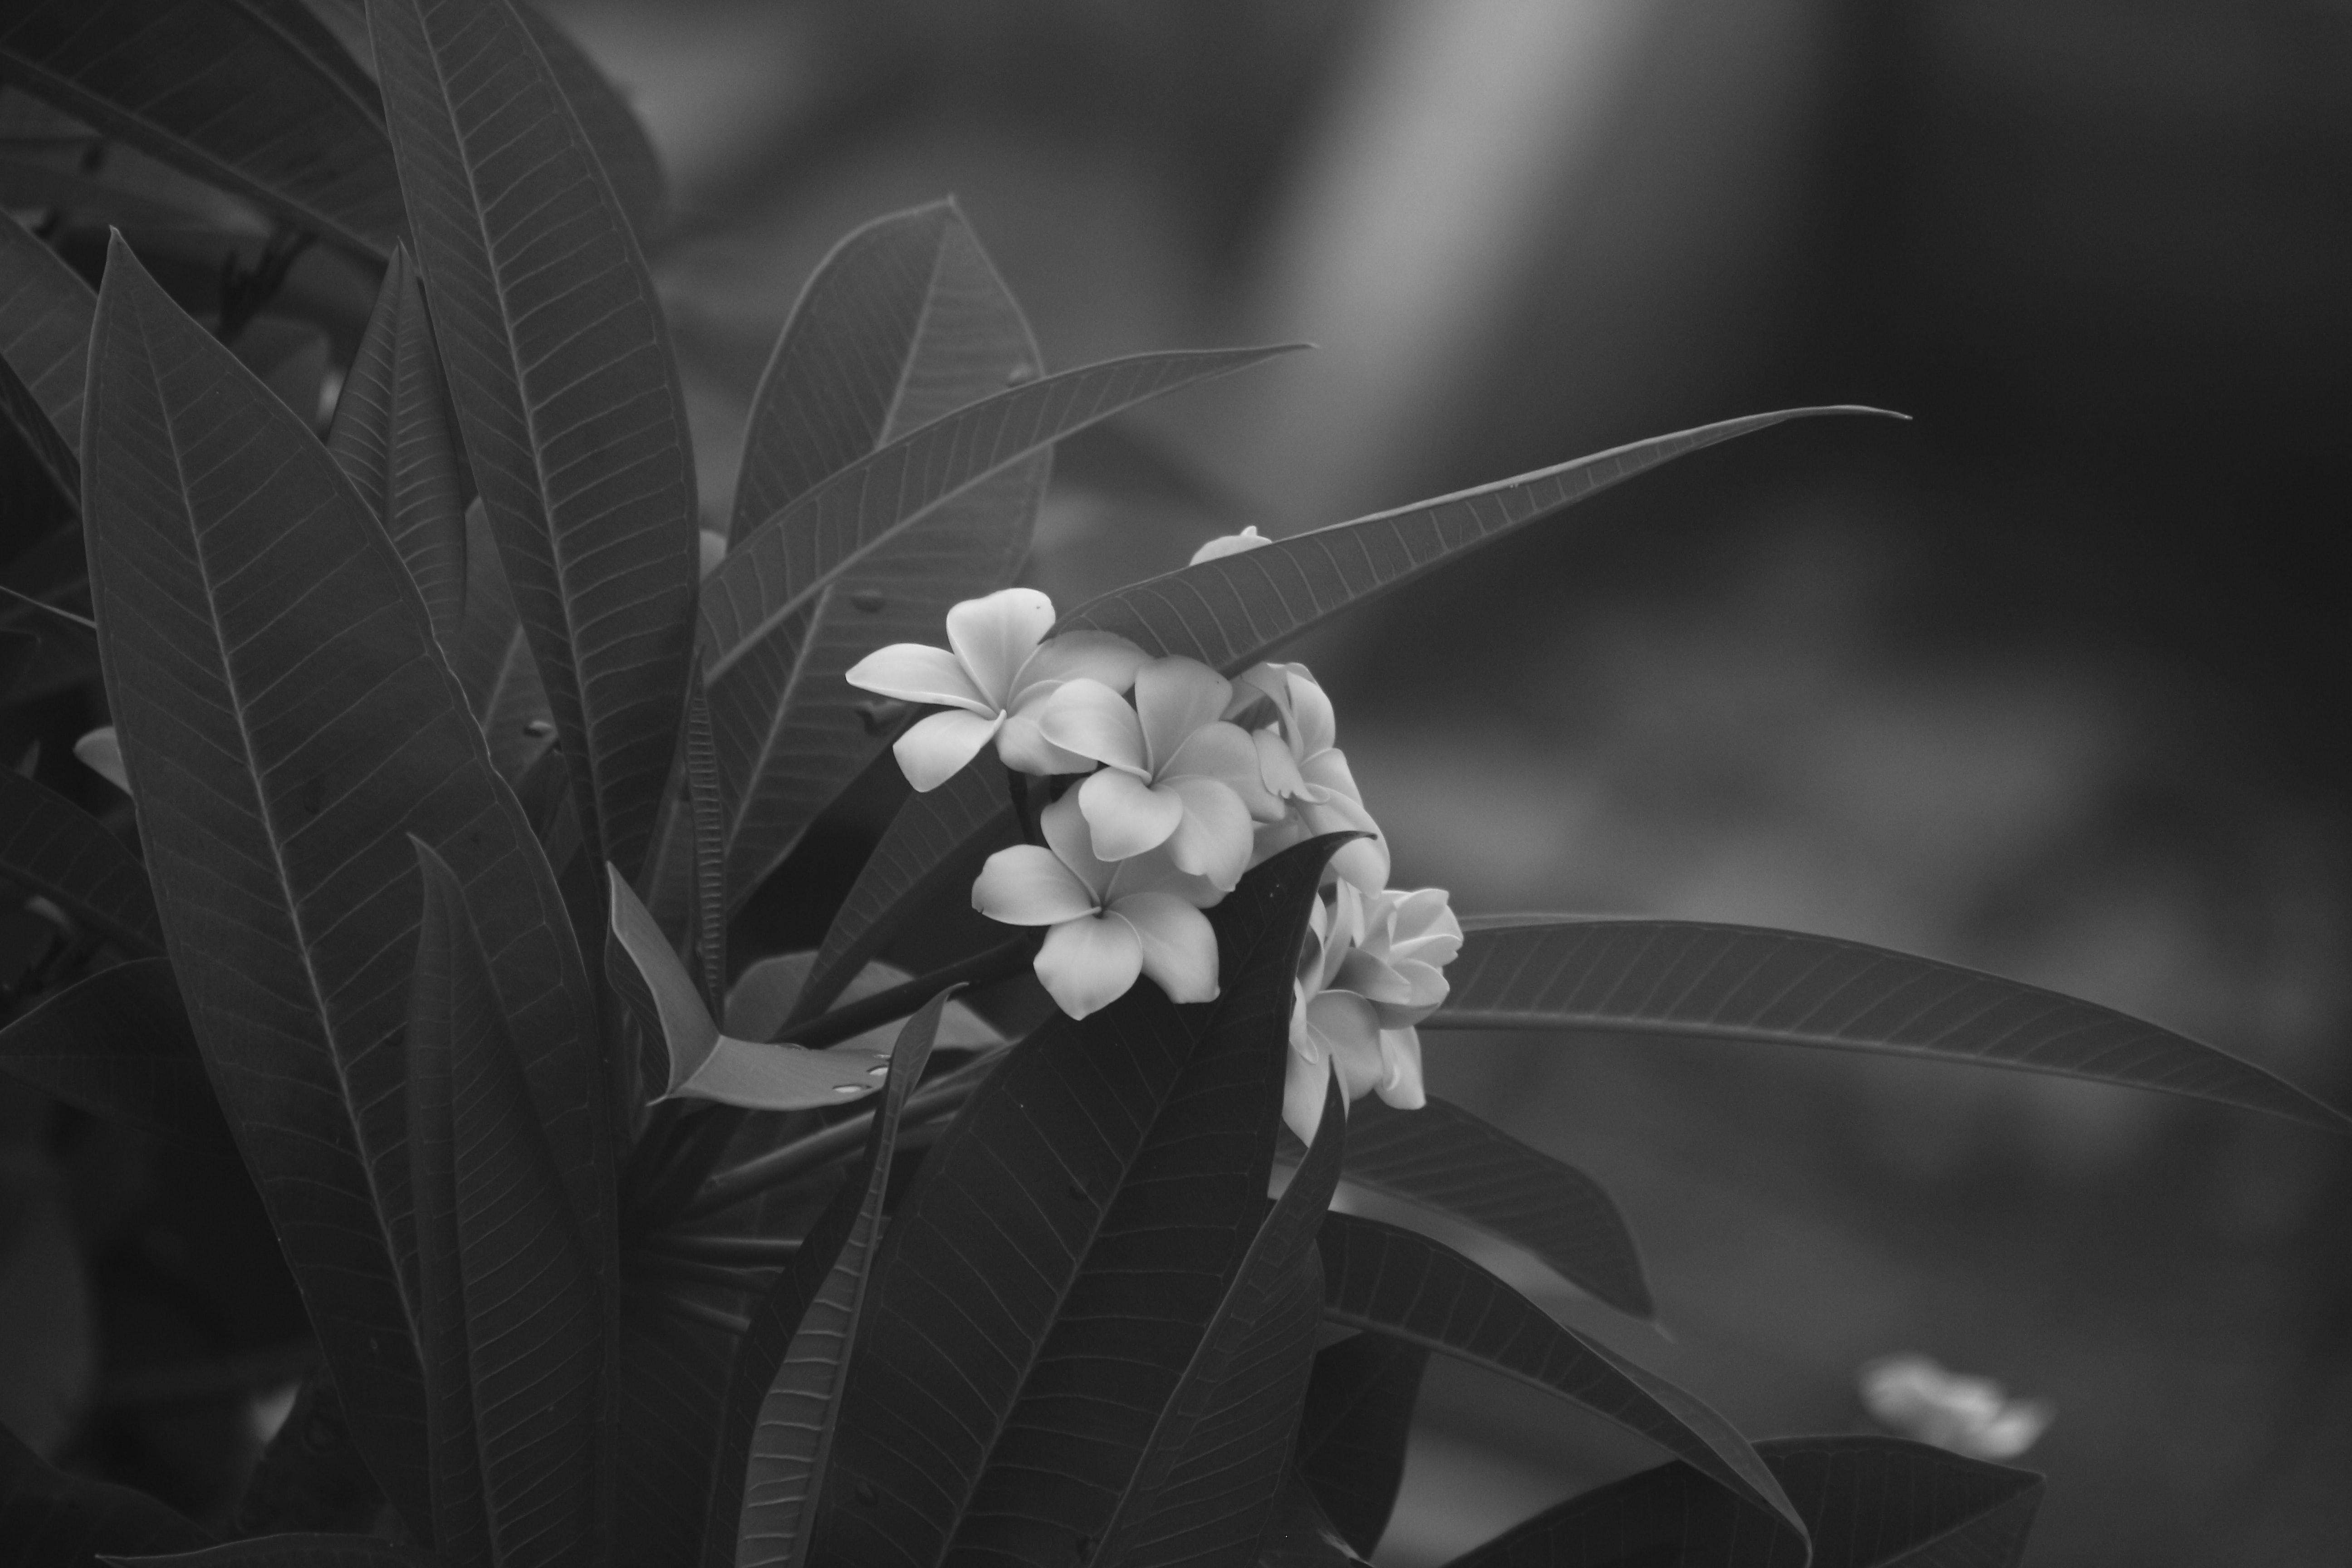 A black and white photo of a white-flowered plant with long lance-like leaves